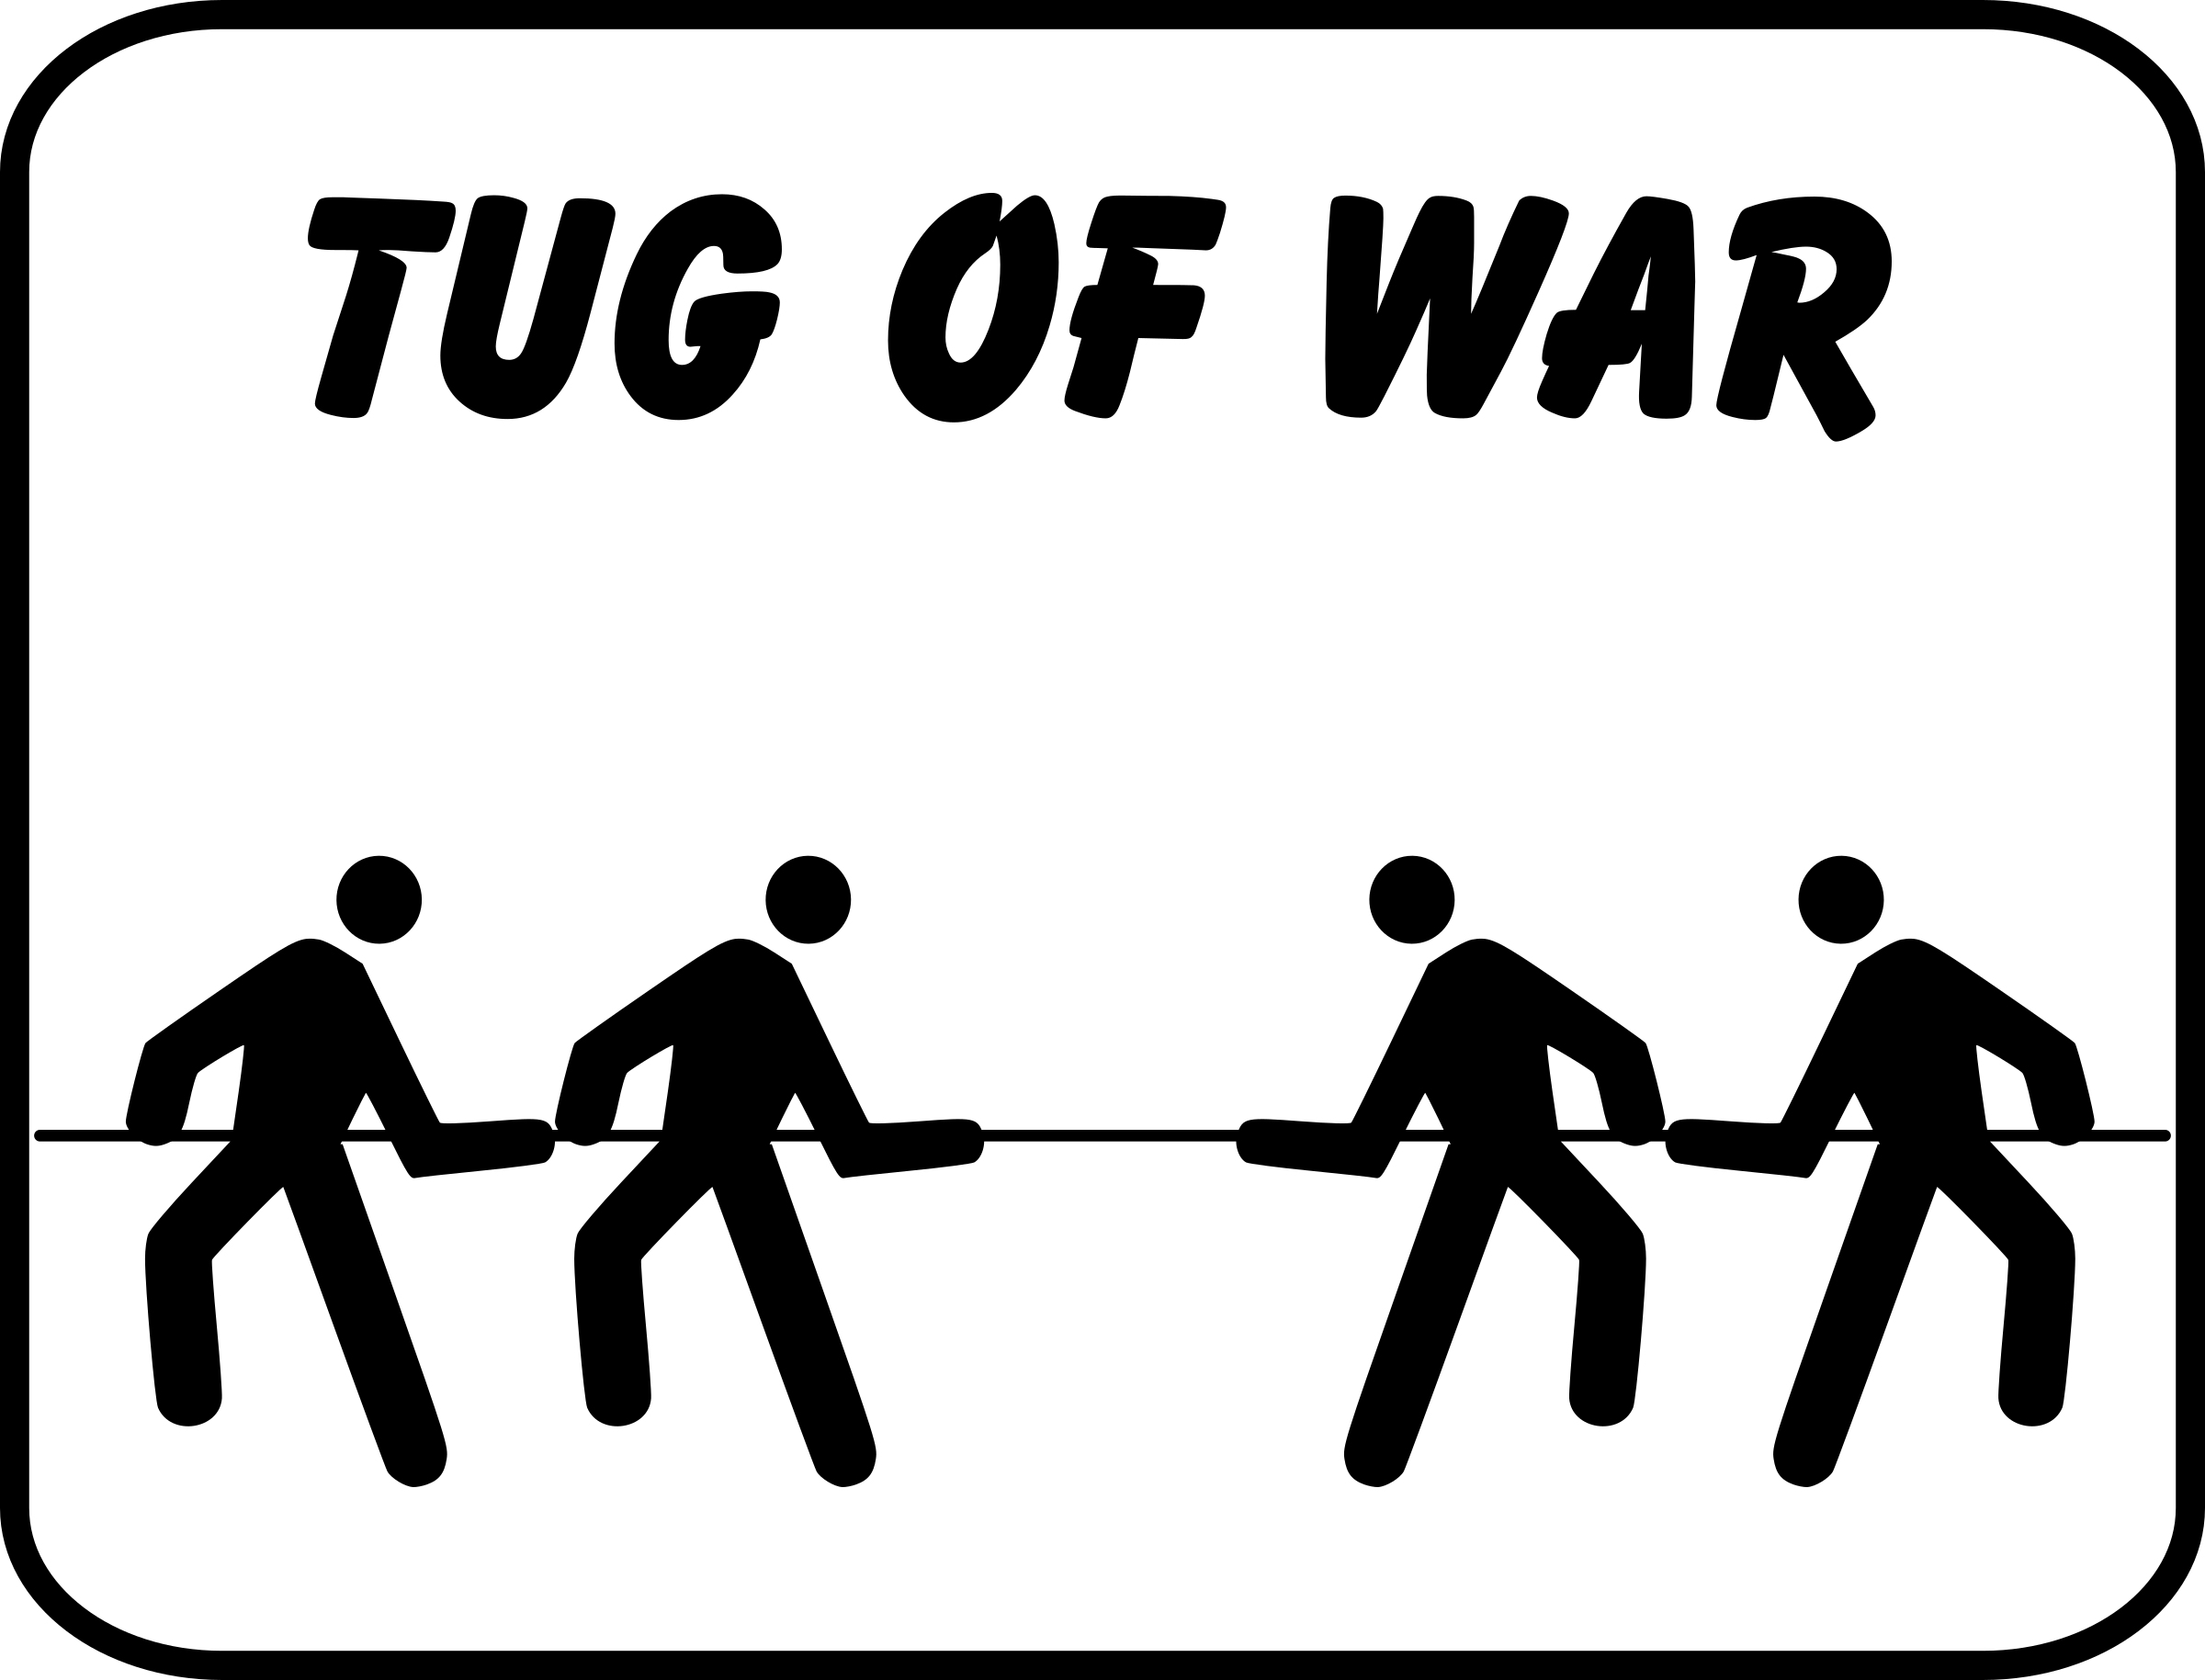 tug of war sign - Tug Of War PNG Black And White